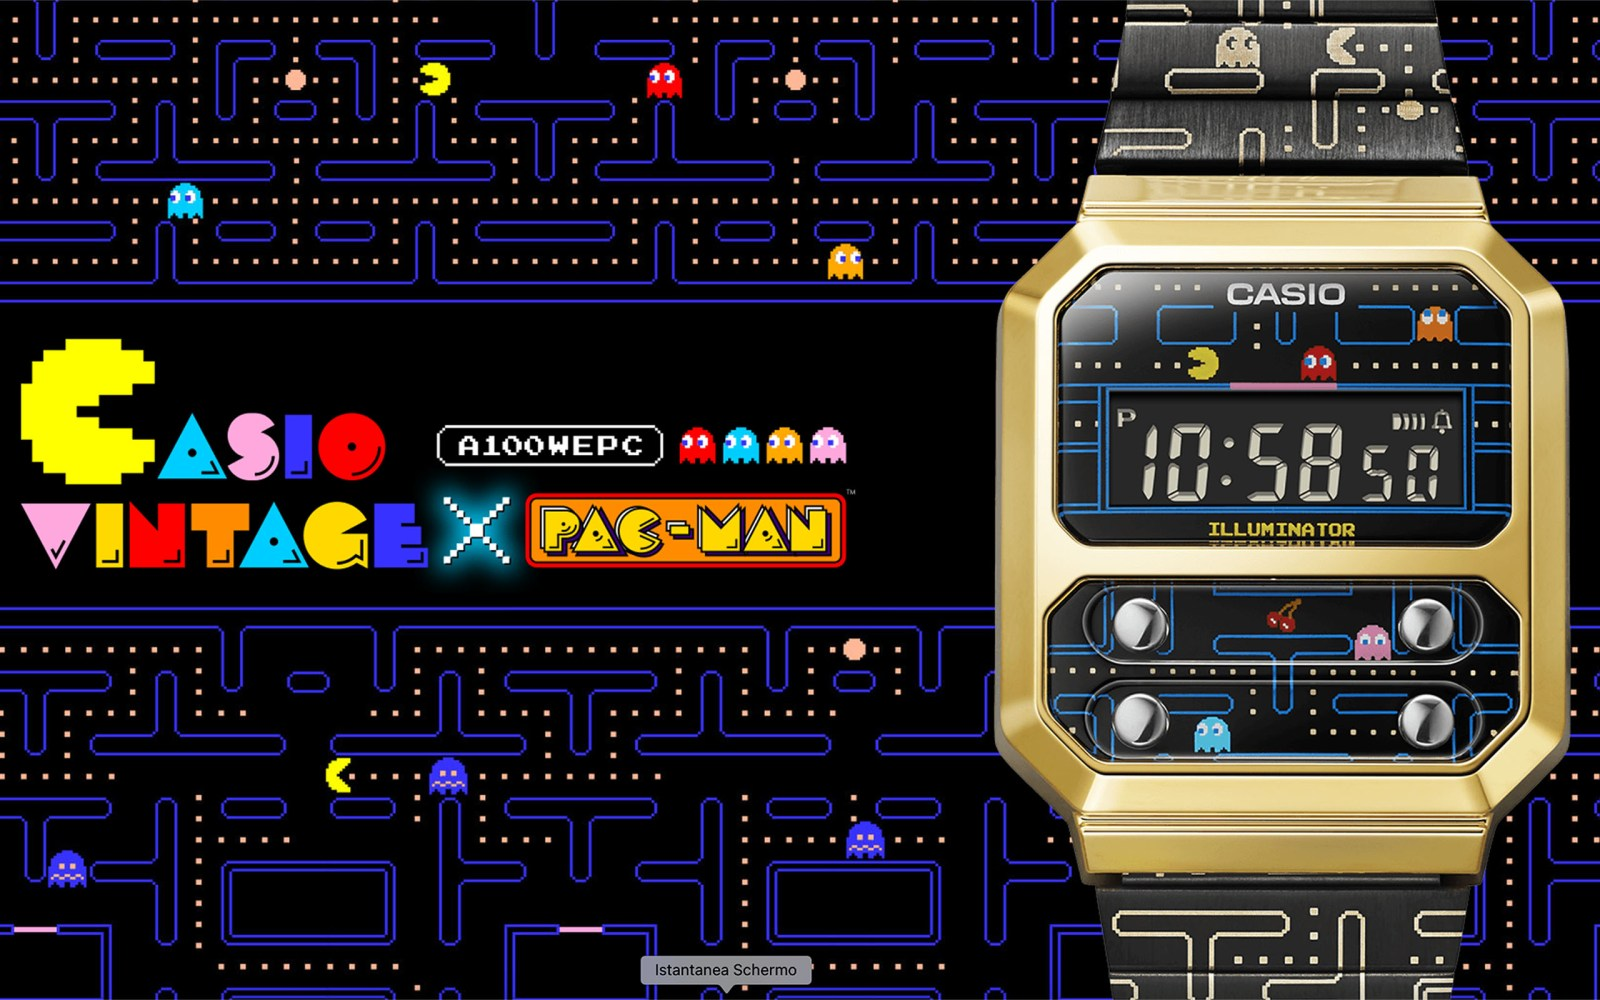 CASIO×PAC-MAN: a collaboration between two legends of the 80s